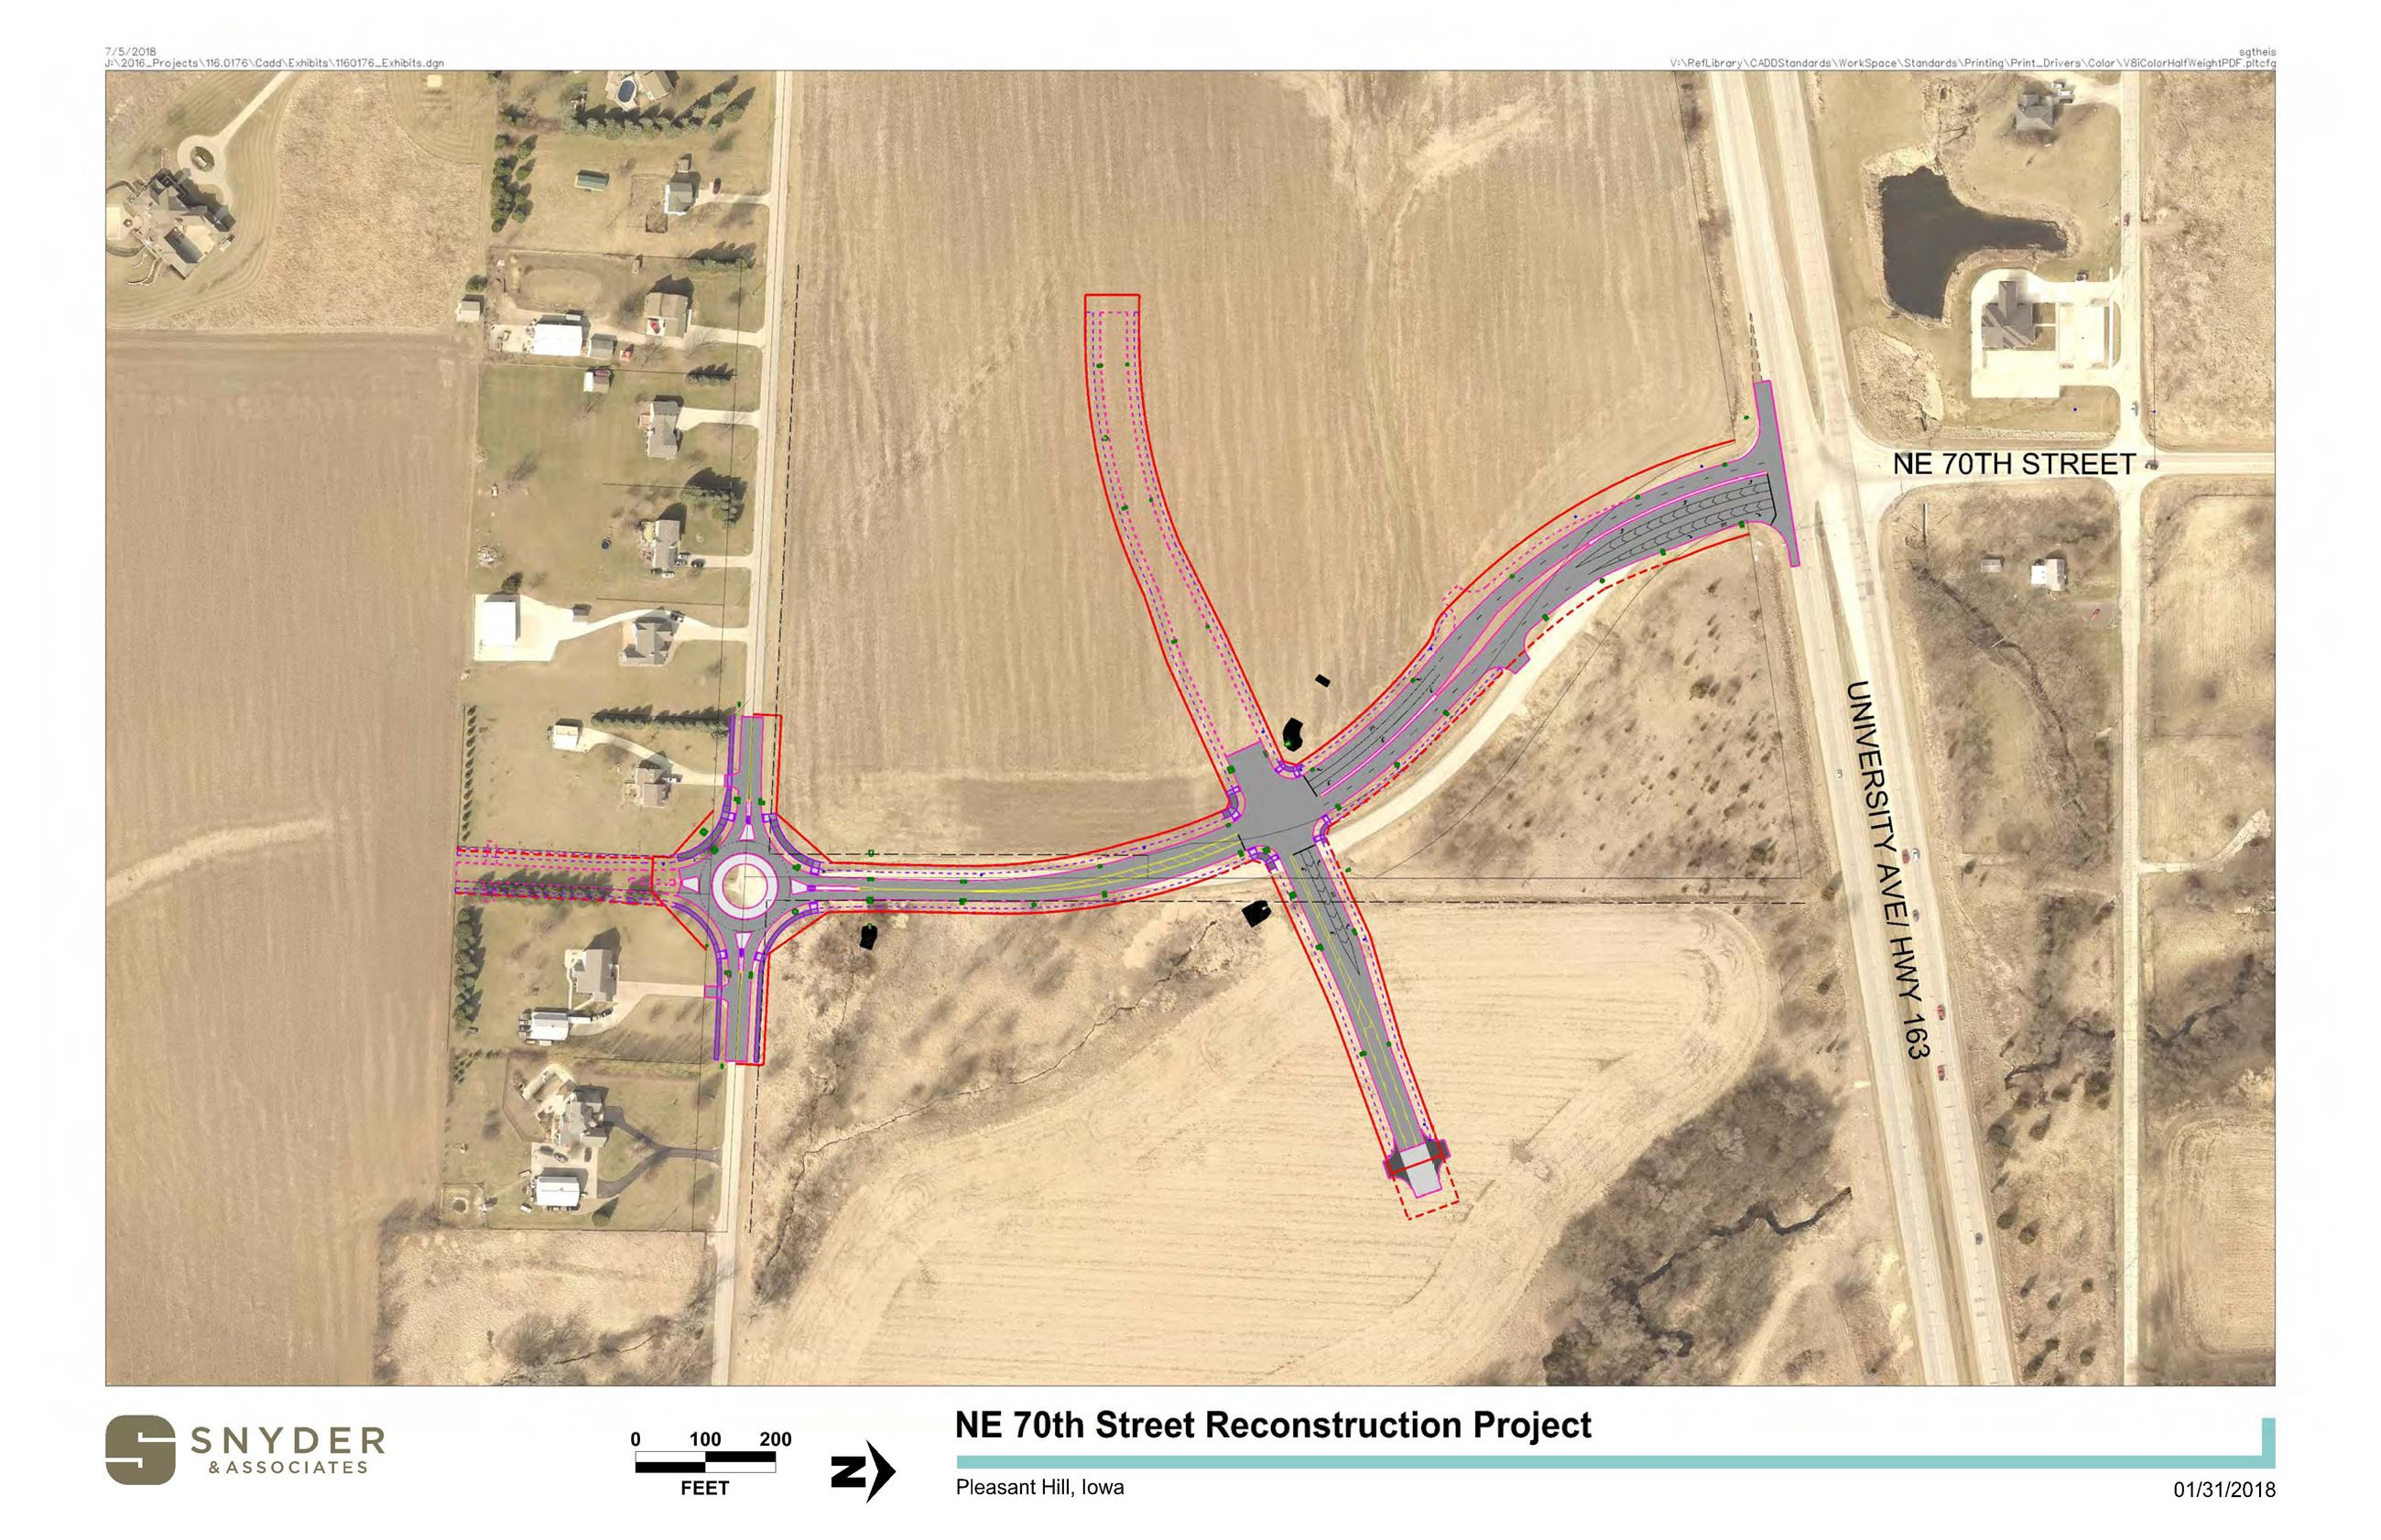 NE 70th Street Project Overview